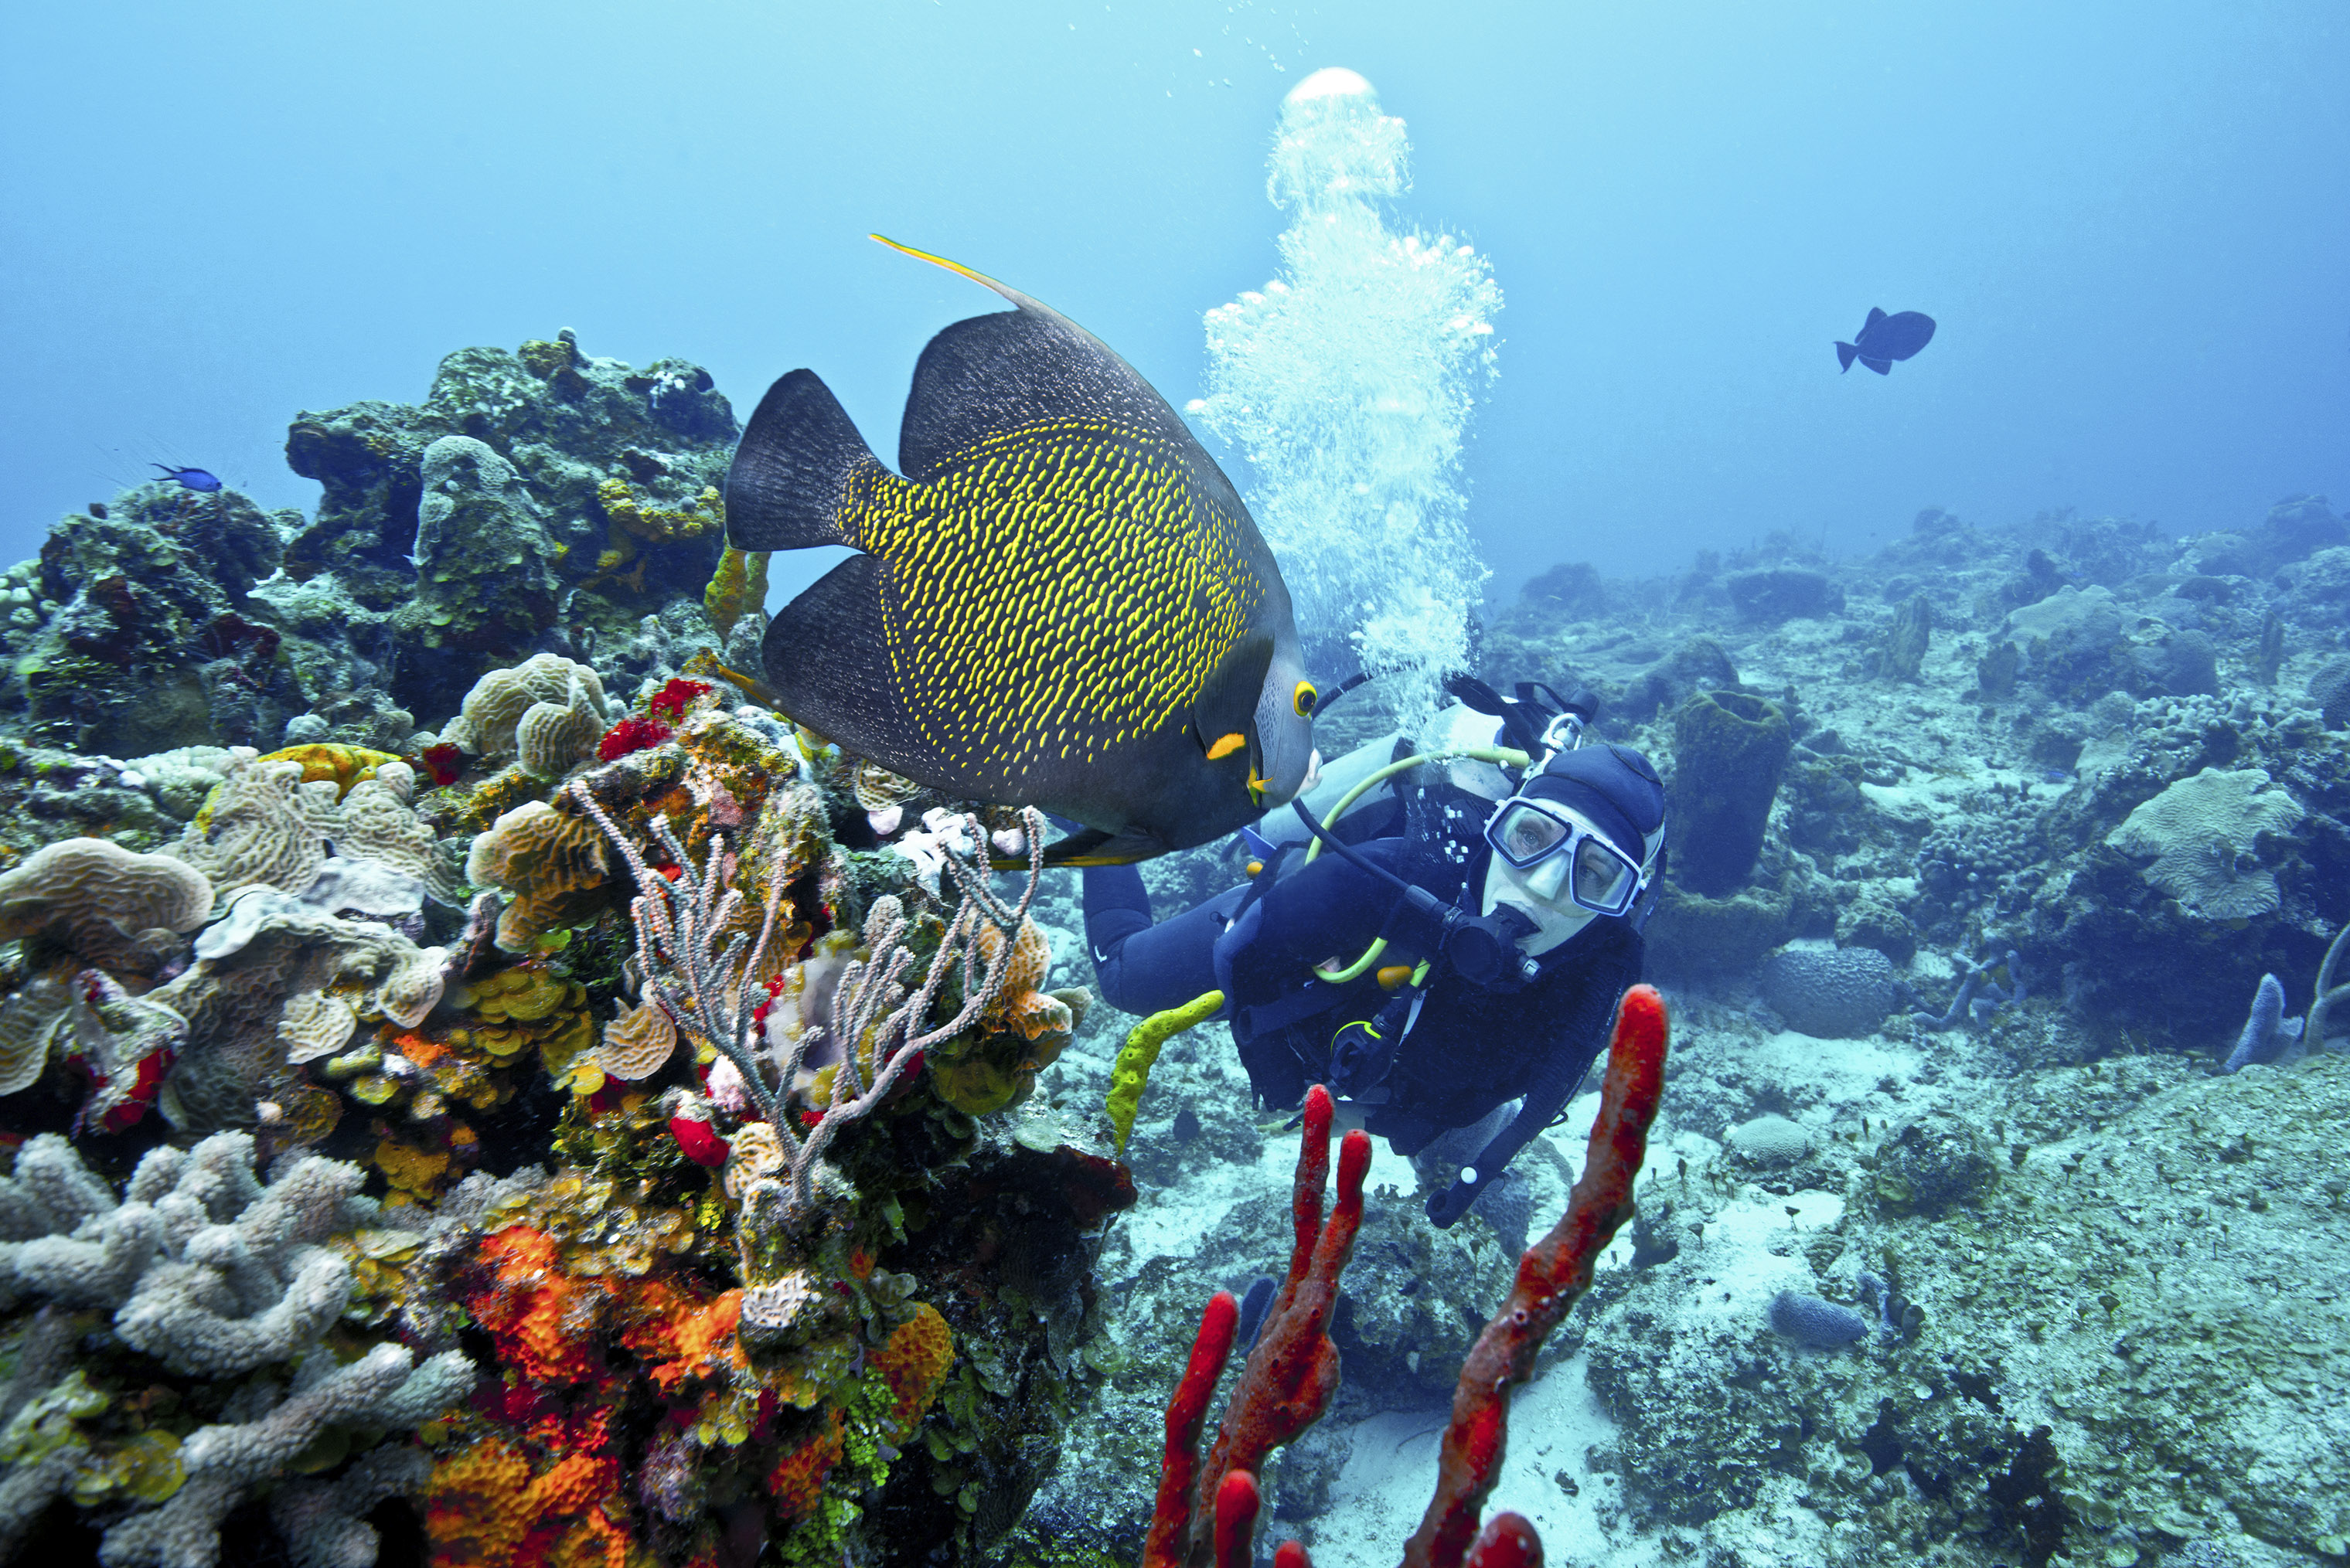 Snorkelers and divers can spot numerous sea creatures in Cozumel's waters.